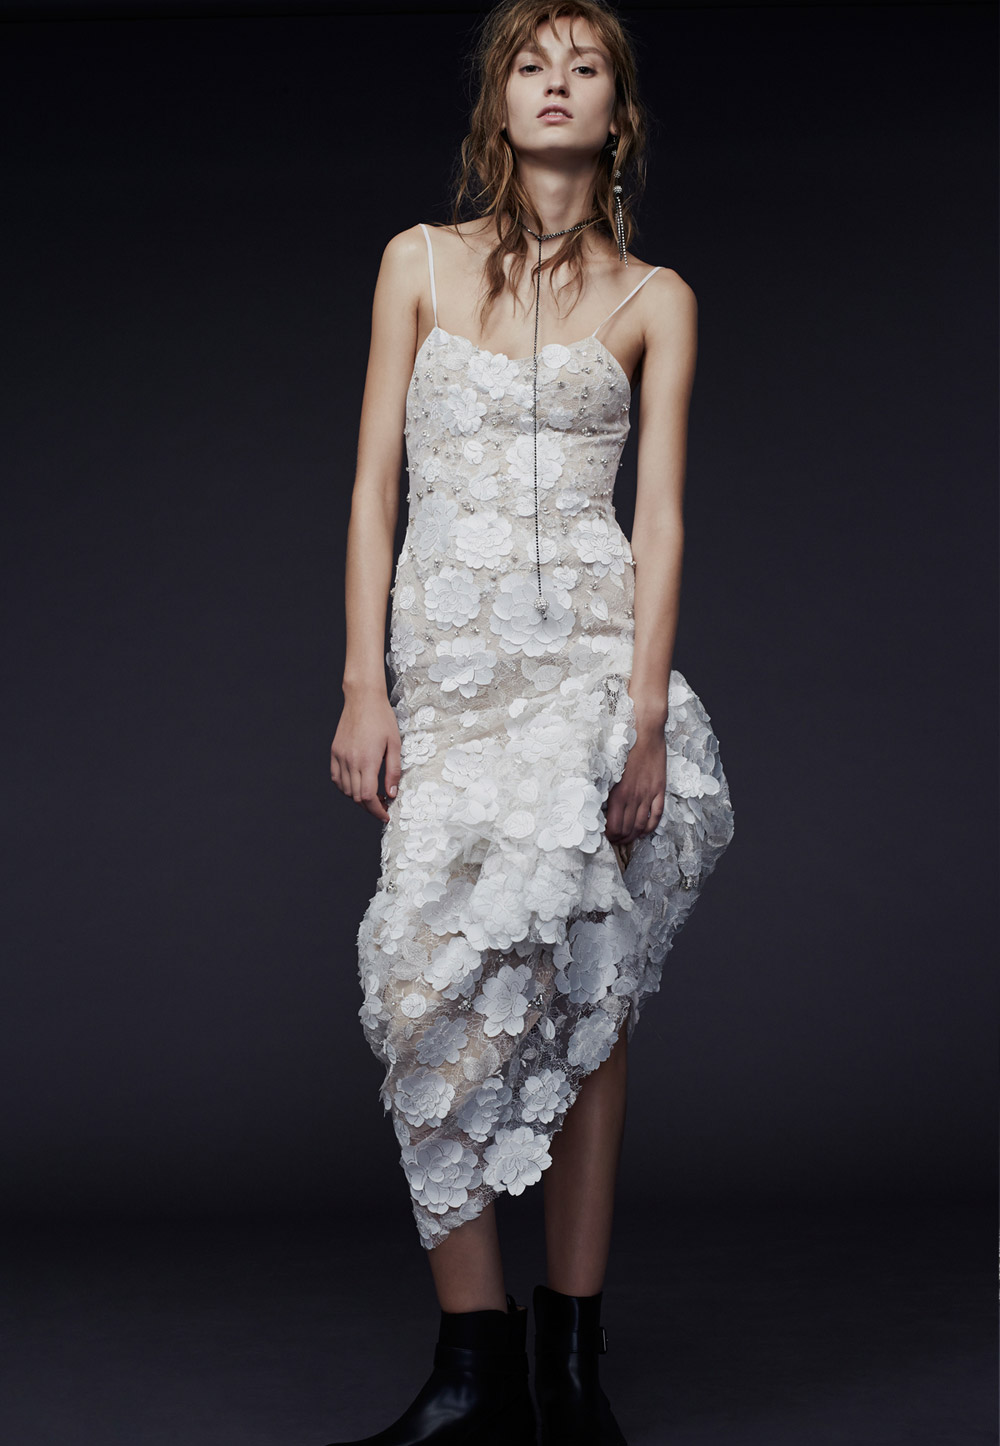 Perla – Vera Wang Fall 2015 Collection. www.theweddingnotebook.com